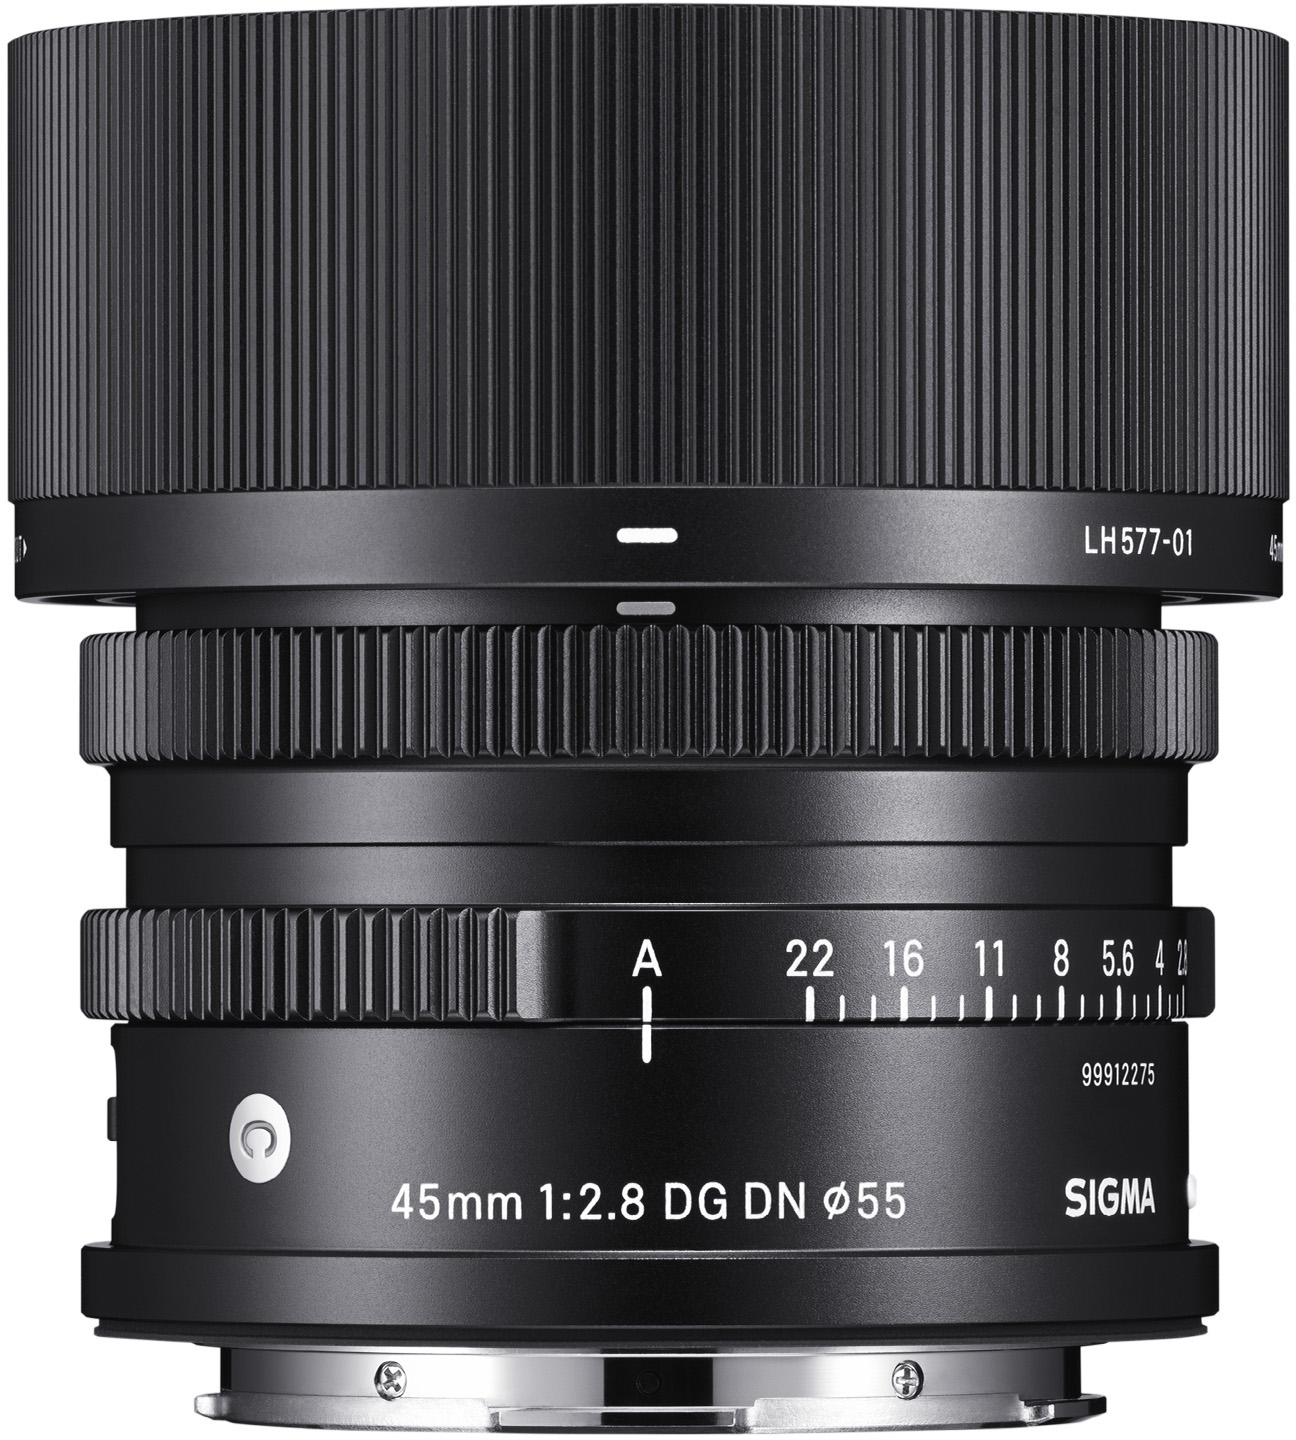 45mm f/2.8 DG DN Contemporary